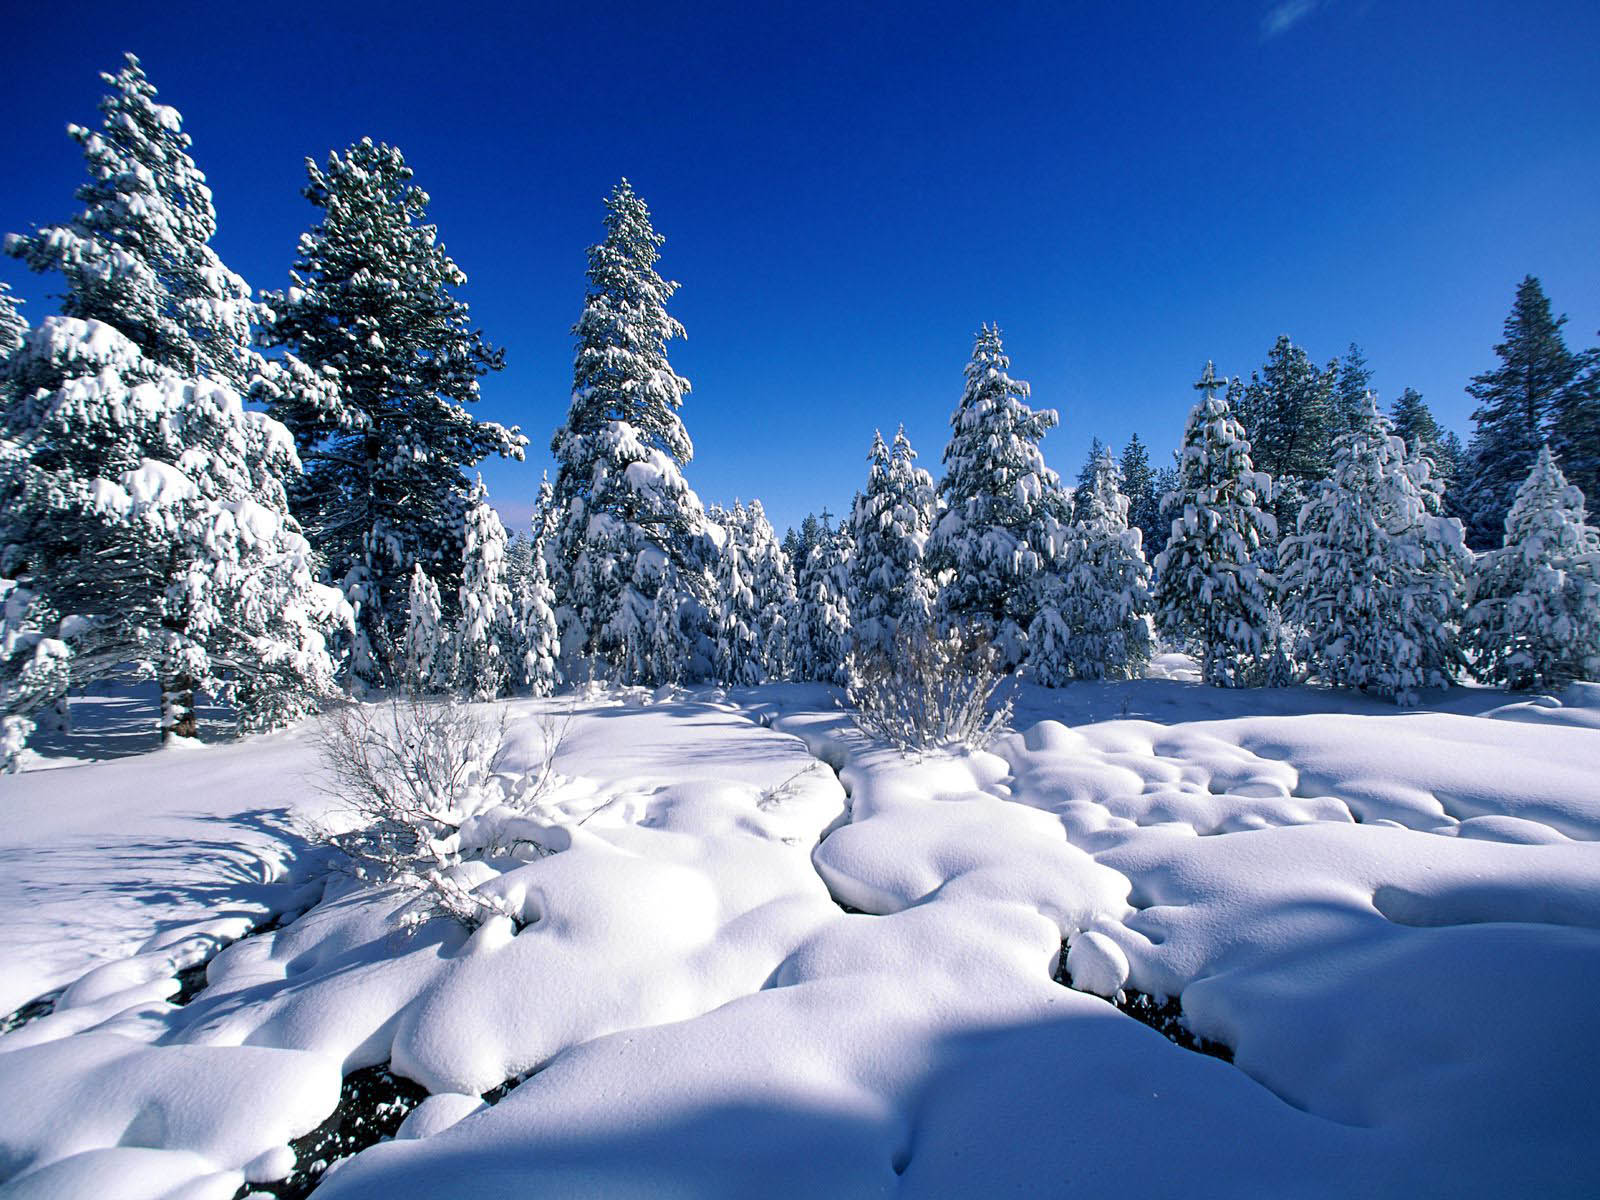 : Snow Wallpapers, Backgrounds, Photos, Pictures,and Images for free